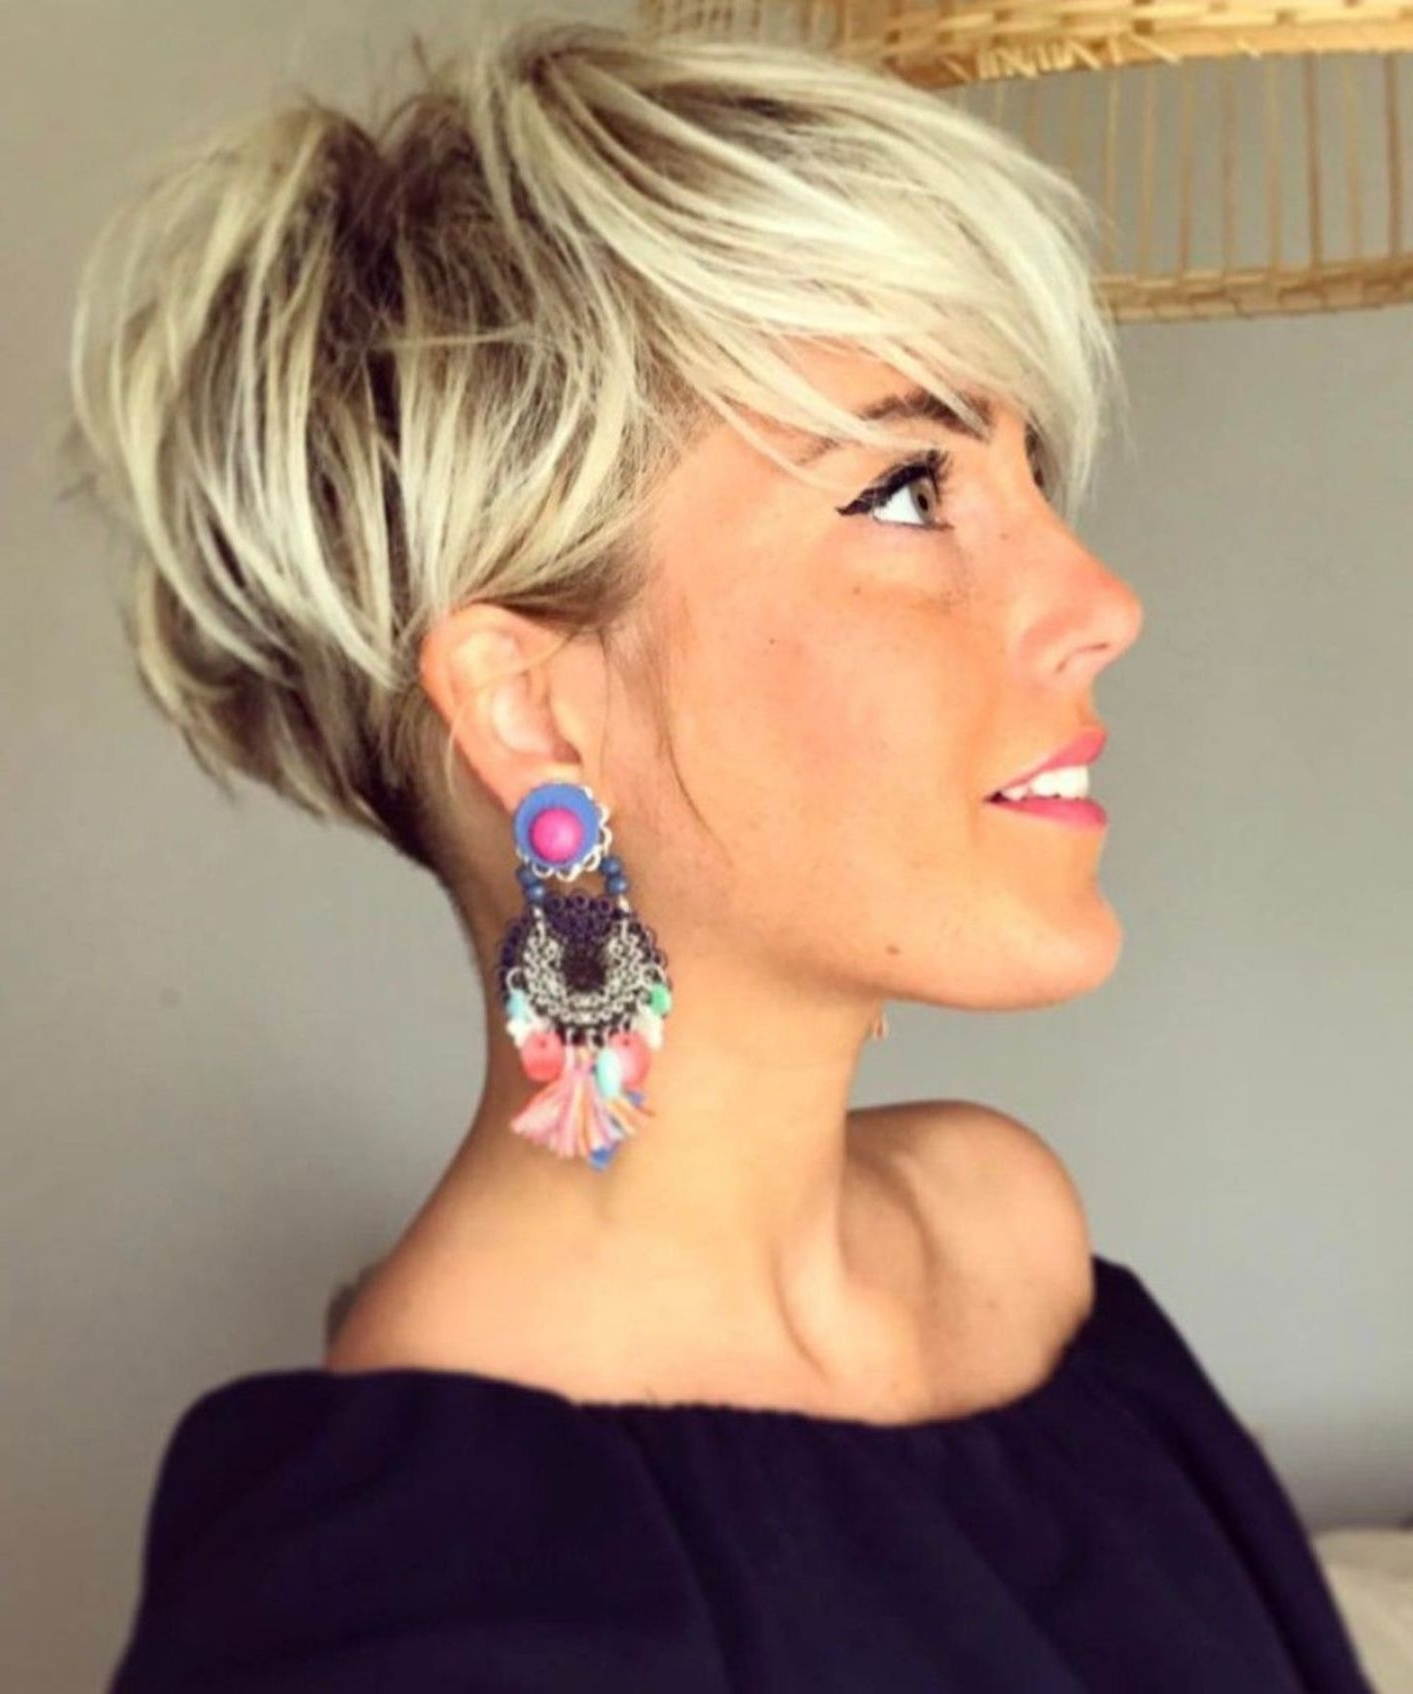 70 Short Shaggy, Spiky, Edgy Pixie Cuts And Hairstyles | Pinterest Inside Recent Undercut Blonde Pixie With Dark Roots (Gallery 1 of 15)